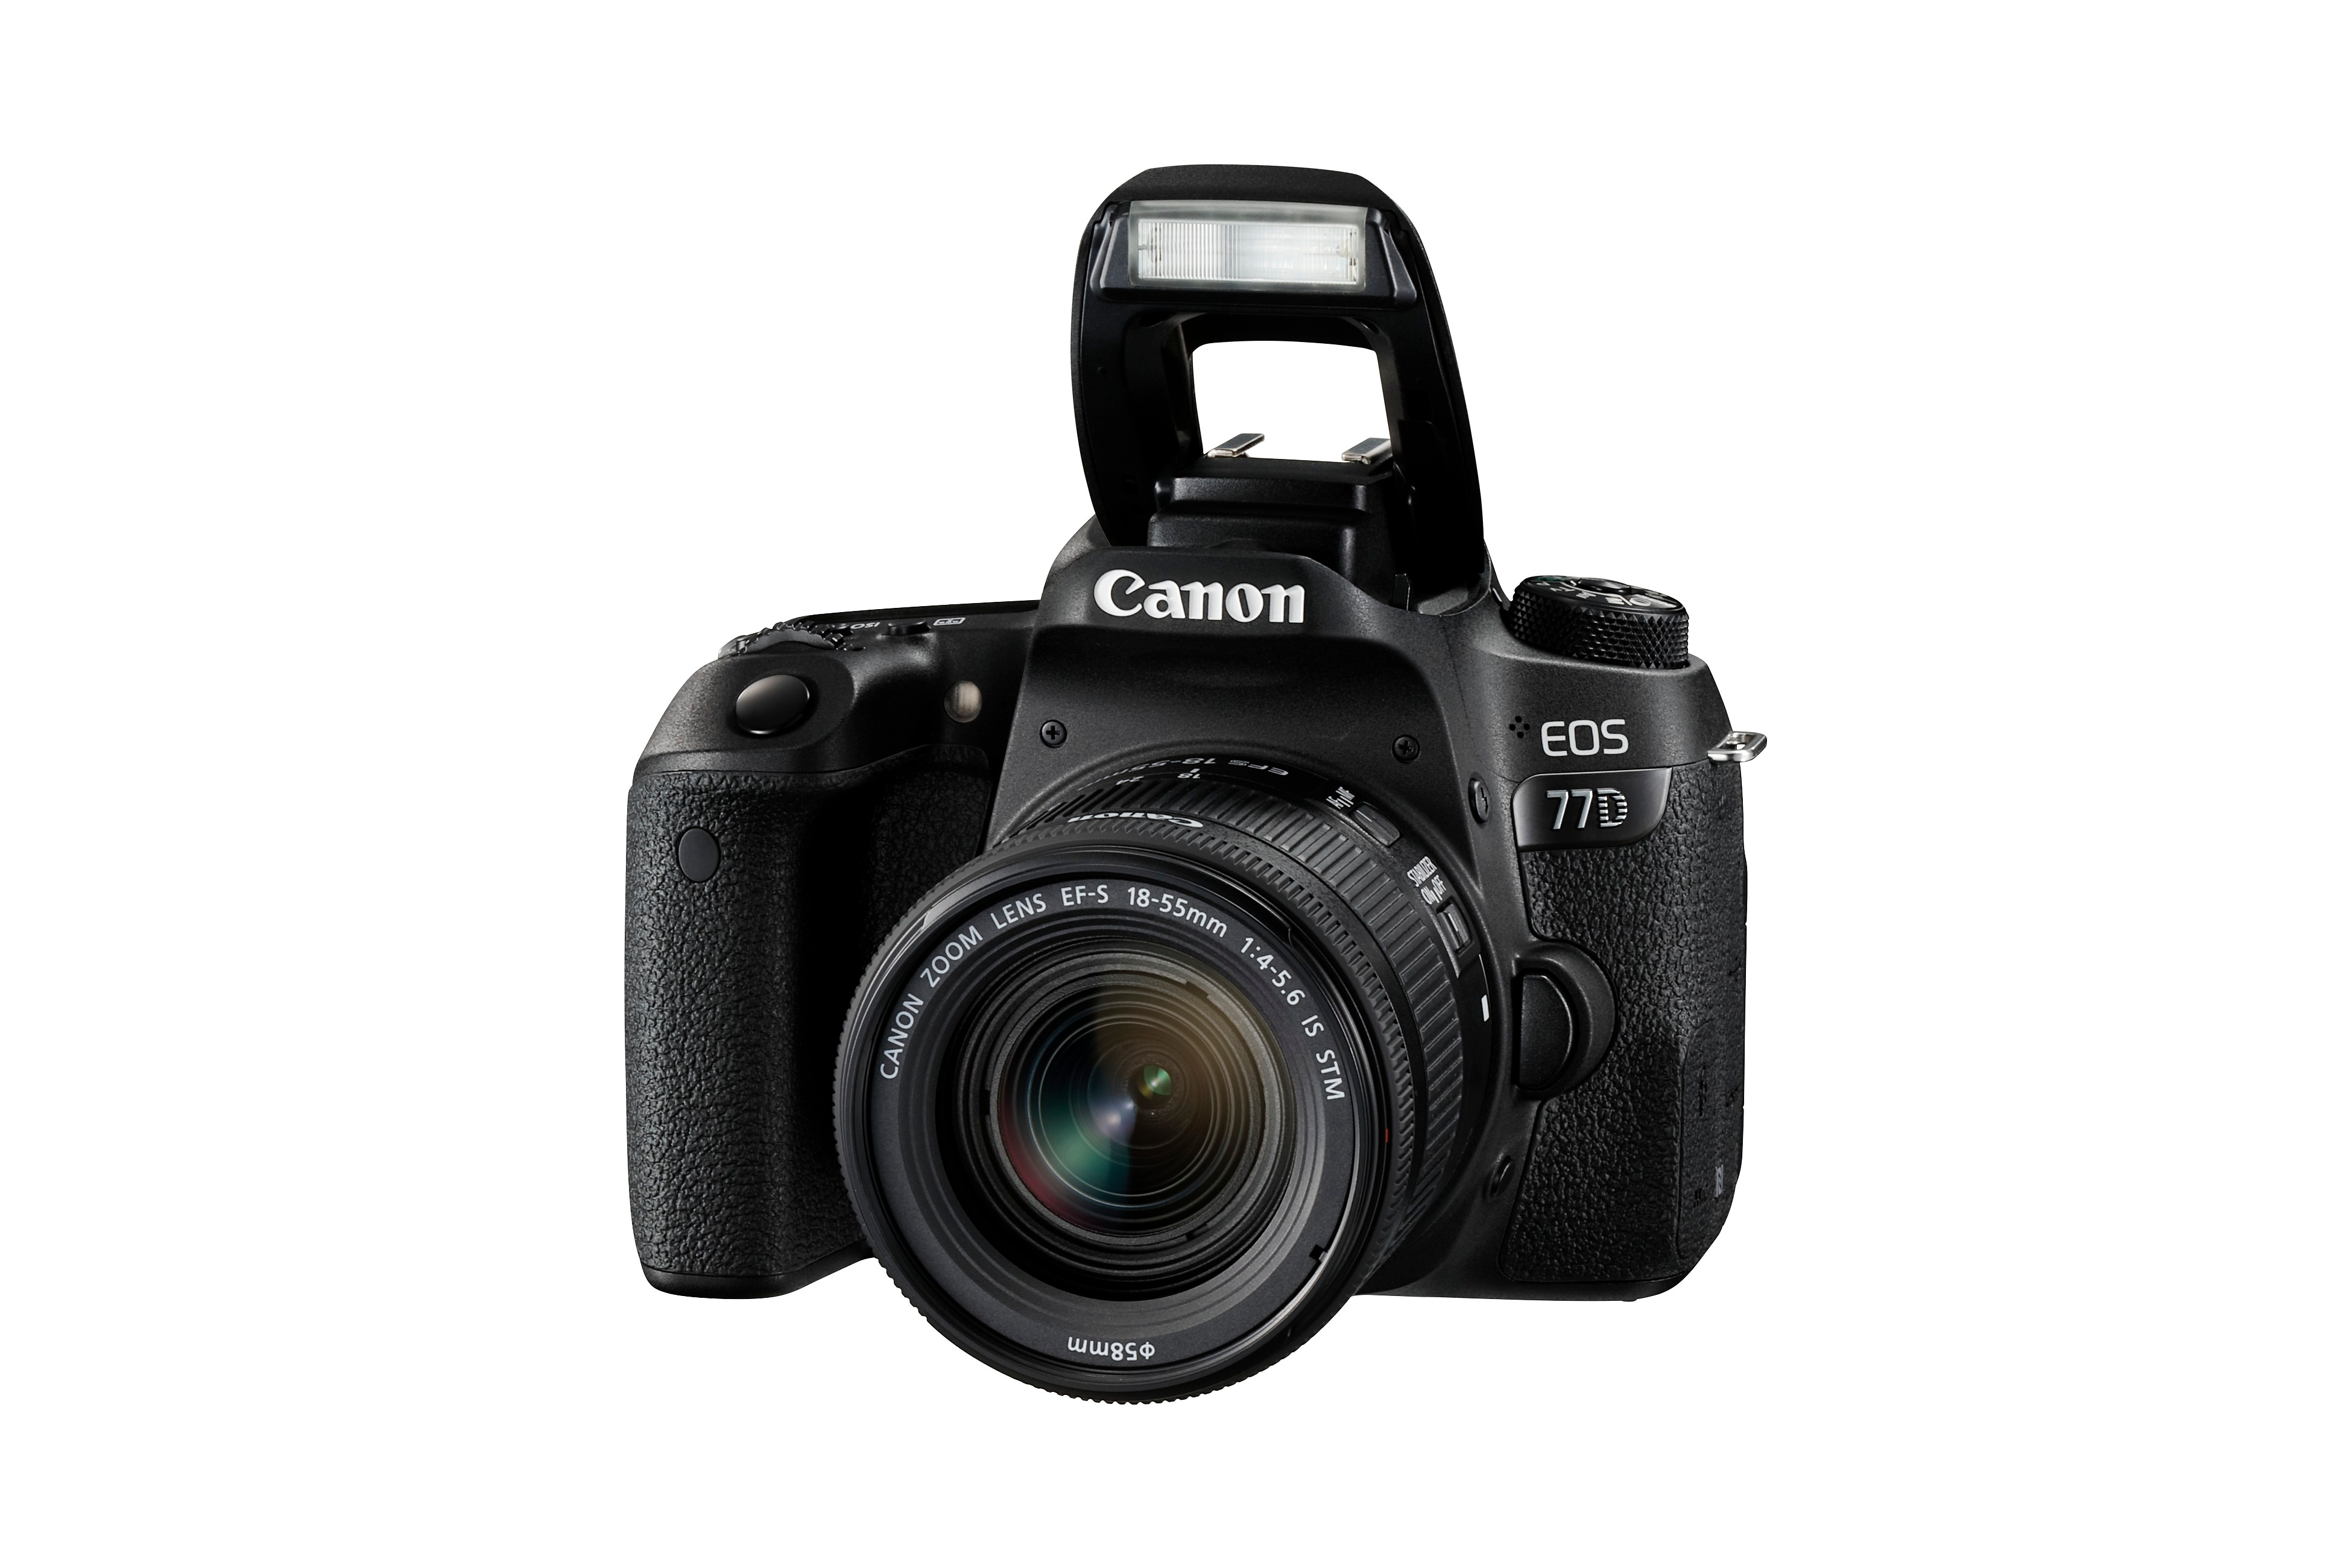 Canon EOS 77D + EF-S 18-55 f/4-5,6 IS STM